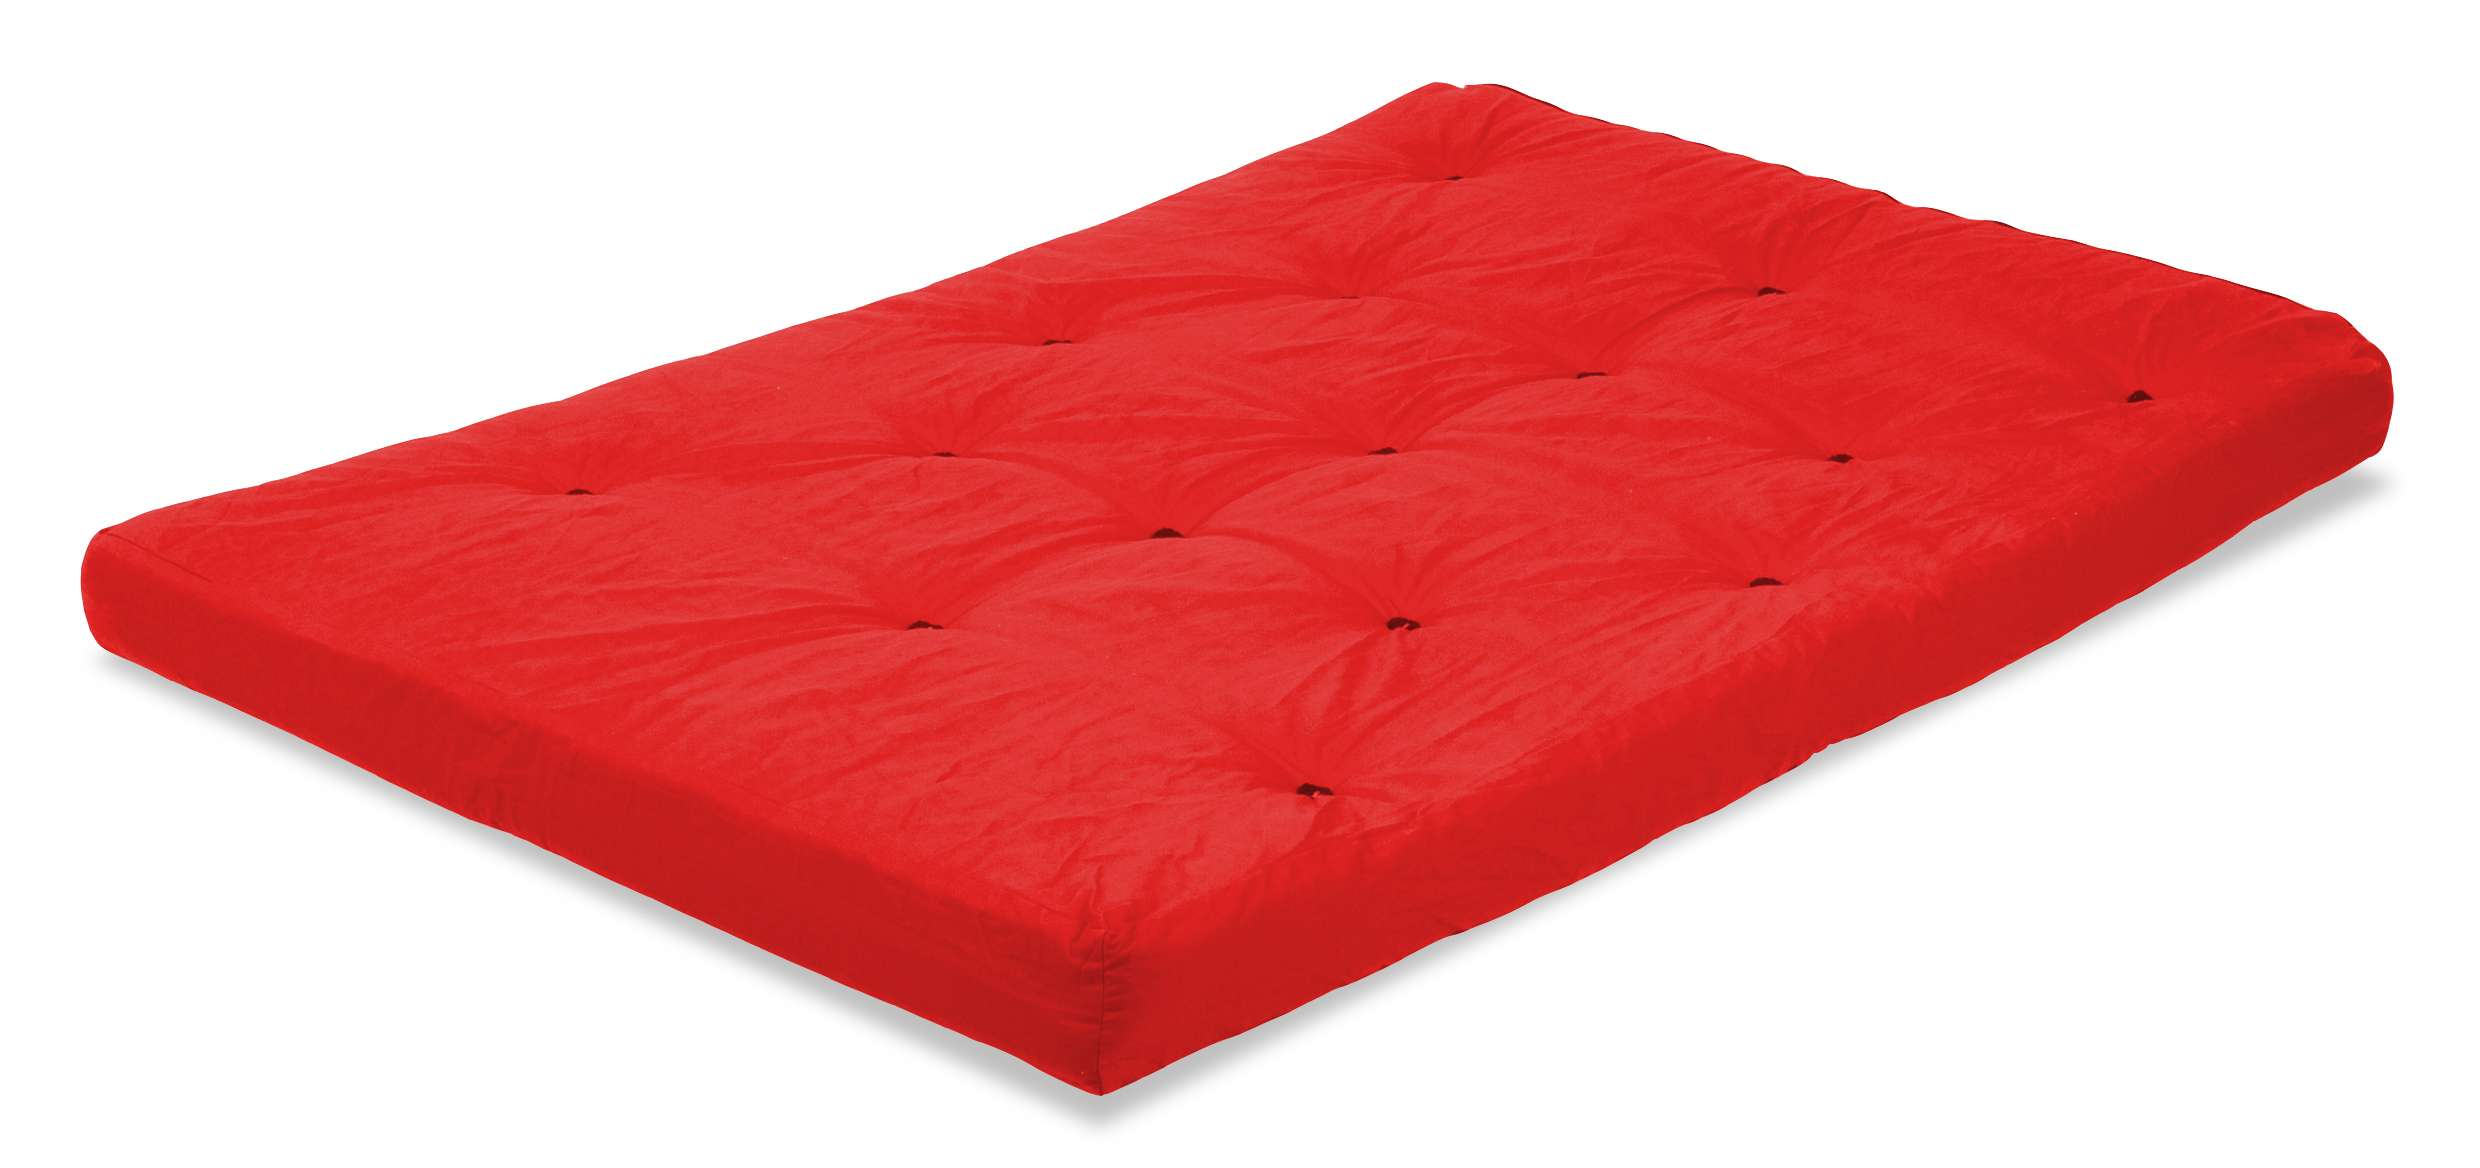 Looking Traditional Futon Mattress Metro